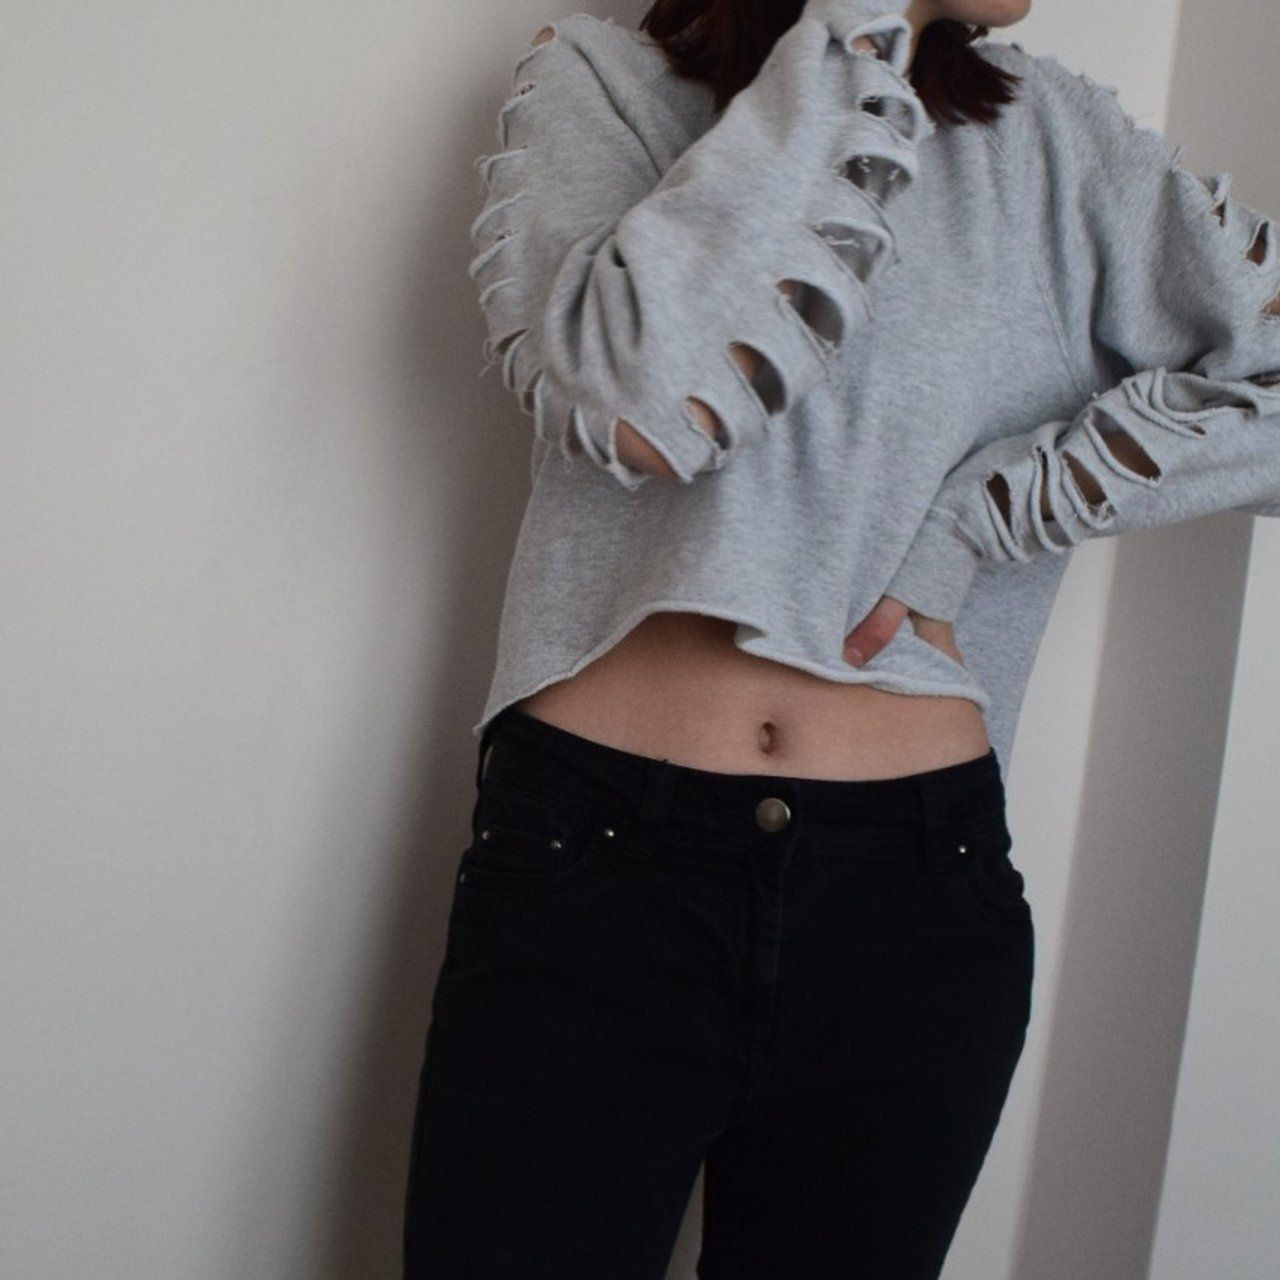 e867a20410 y2k cropped sweatshirt with ripped arms and back from the a - Depop - 30